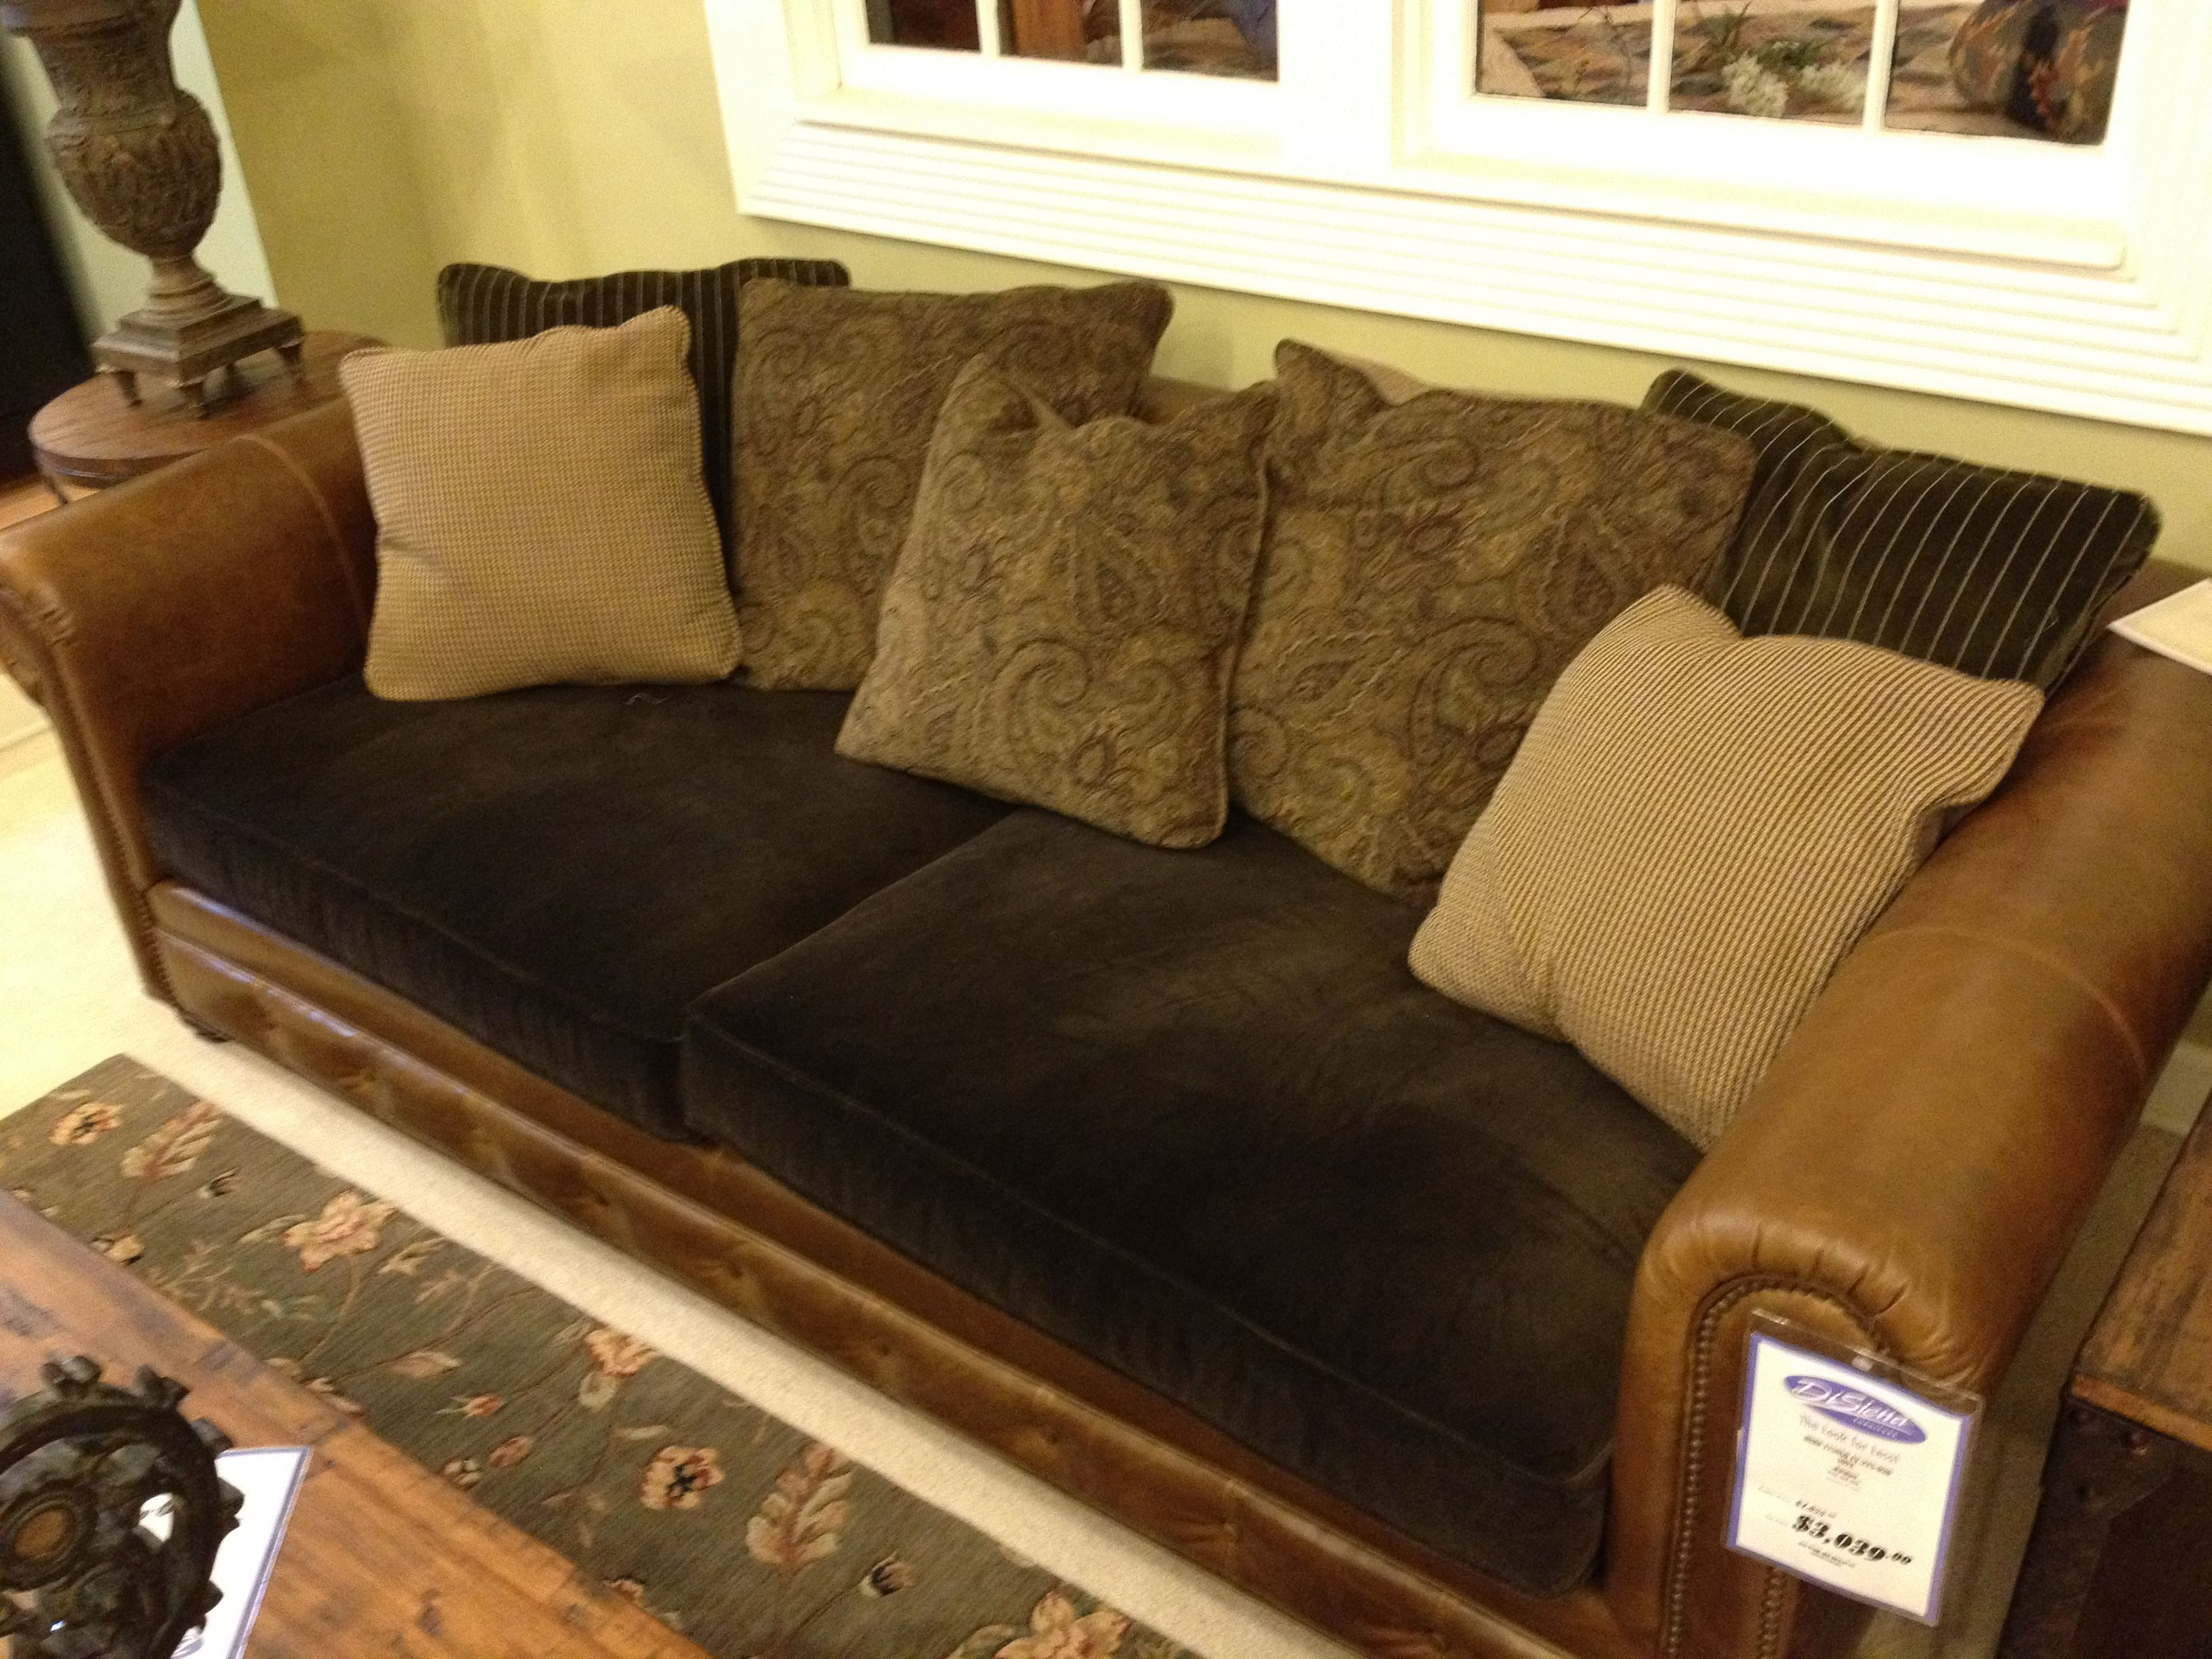 Leather Couch With Fabric Cushions Cushions On Sofa in proportions 3264 X 2448